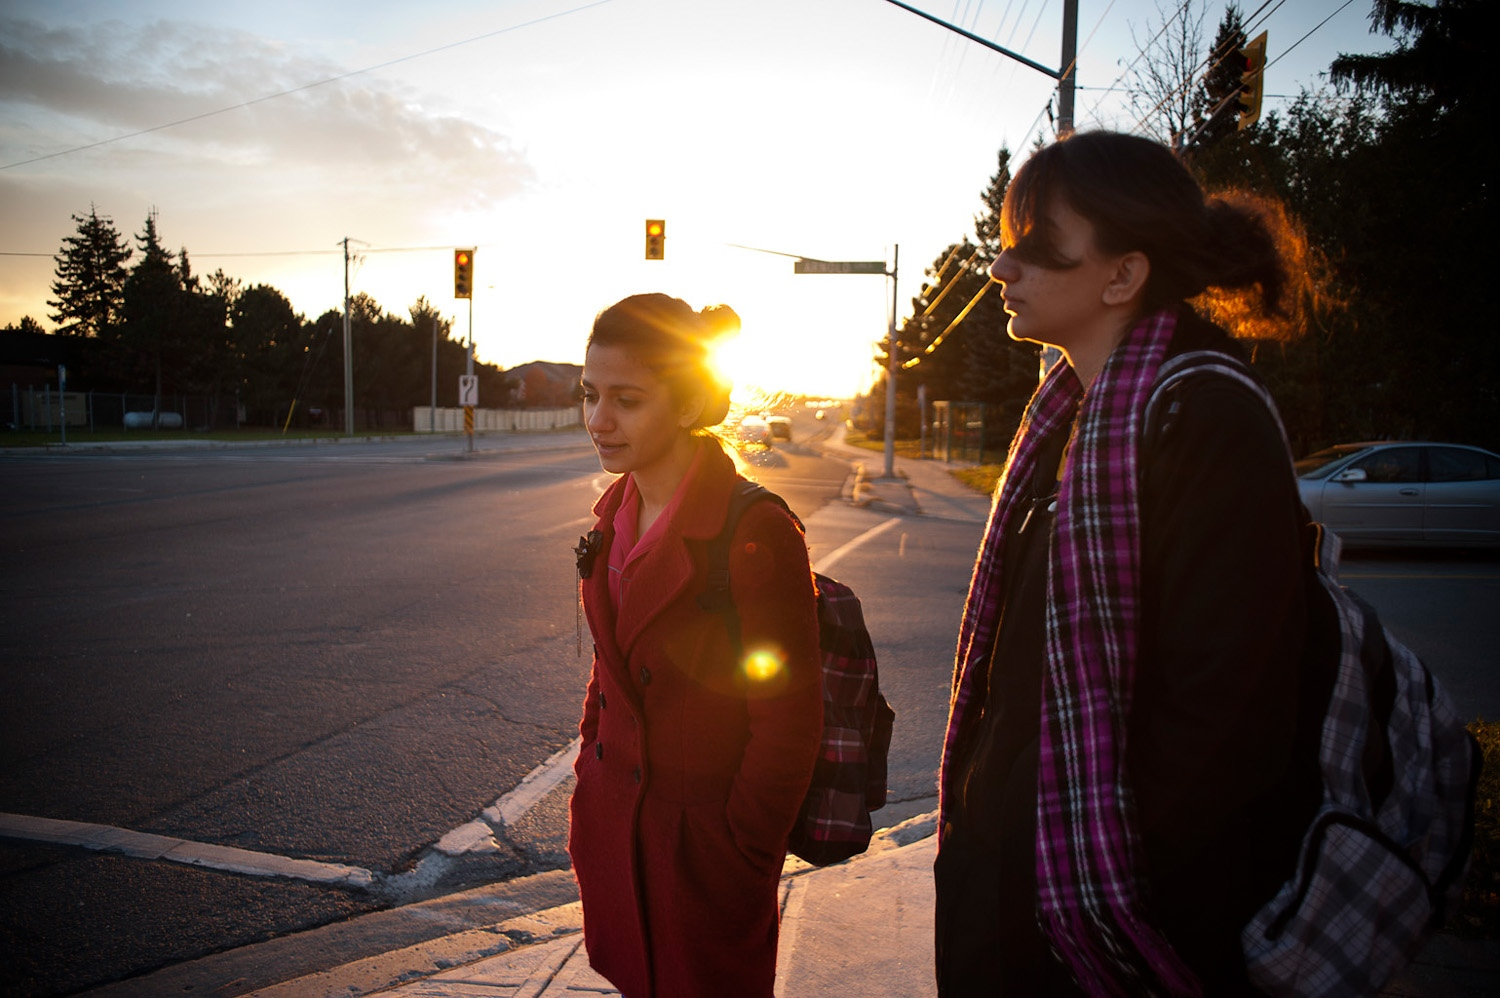 RICHMOND HILL, CANADA - 02/11/10 - Soheila and her younger sister walk home from school. Having the other sister around in school helps and make the transition into the new school and culture much easier.